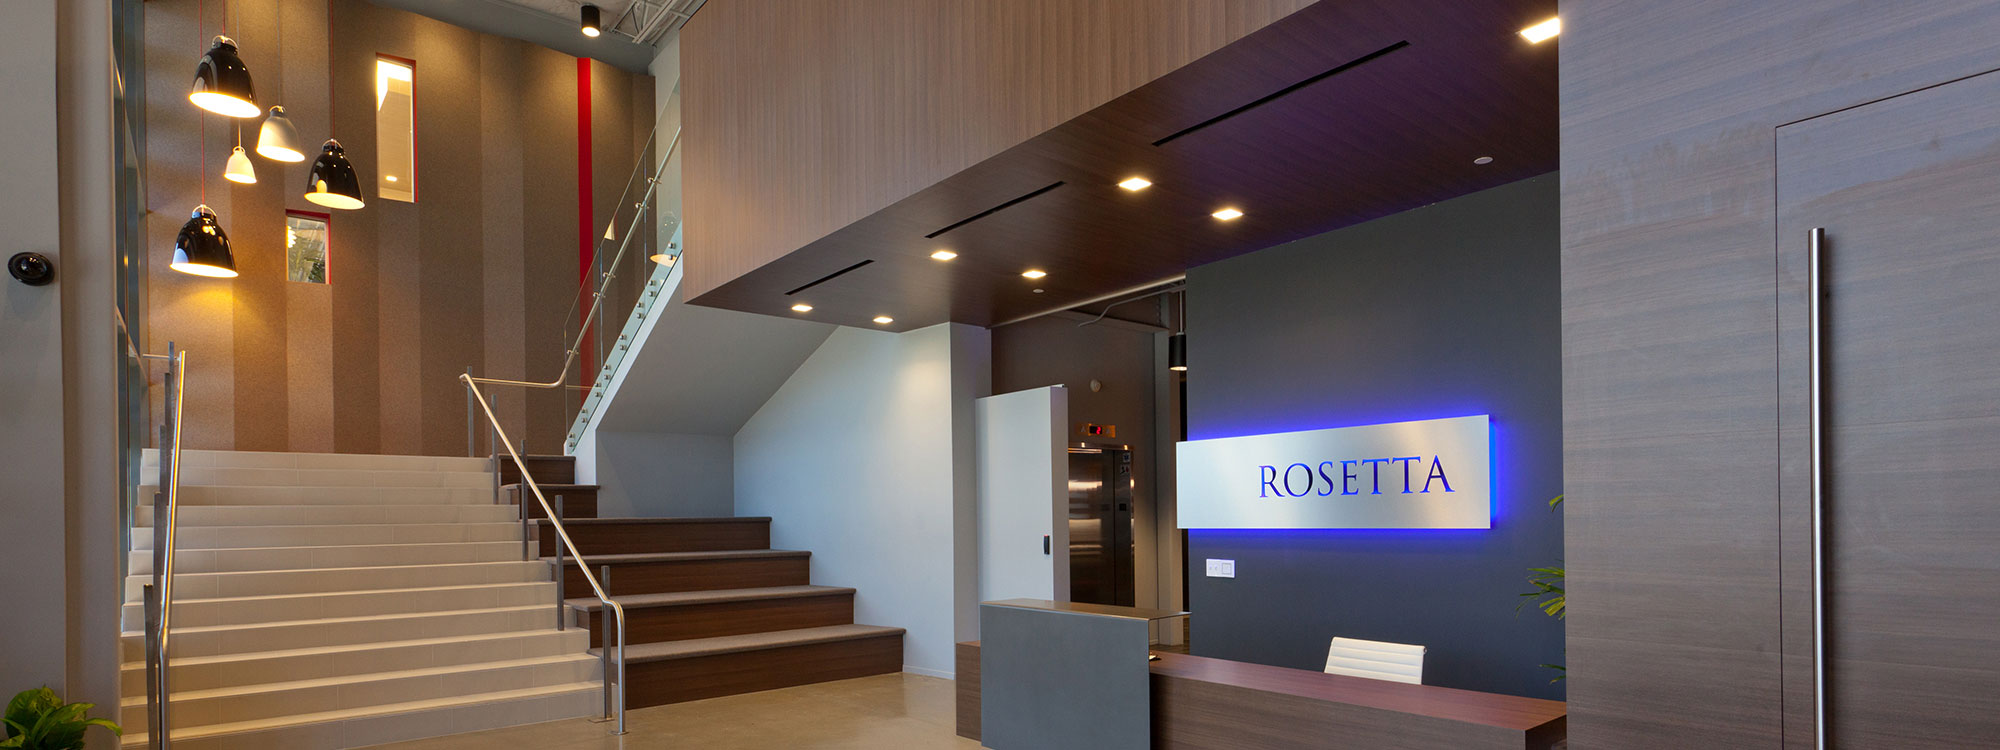 Rosetta Offices Builder - High Tech Office Builder - JW Design & Construction